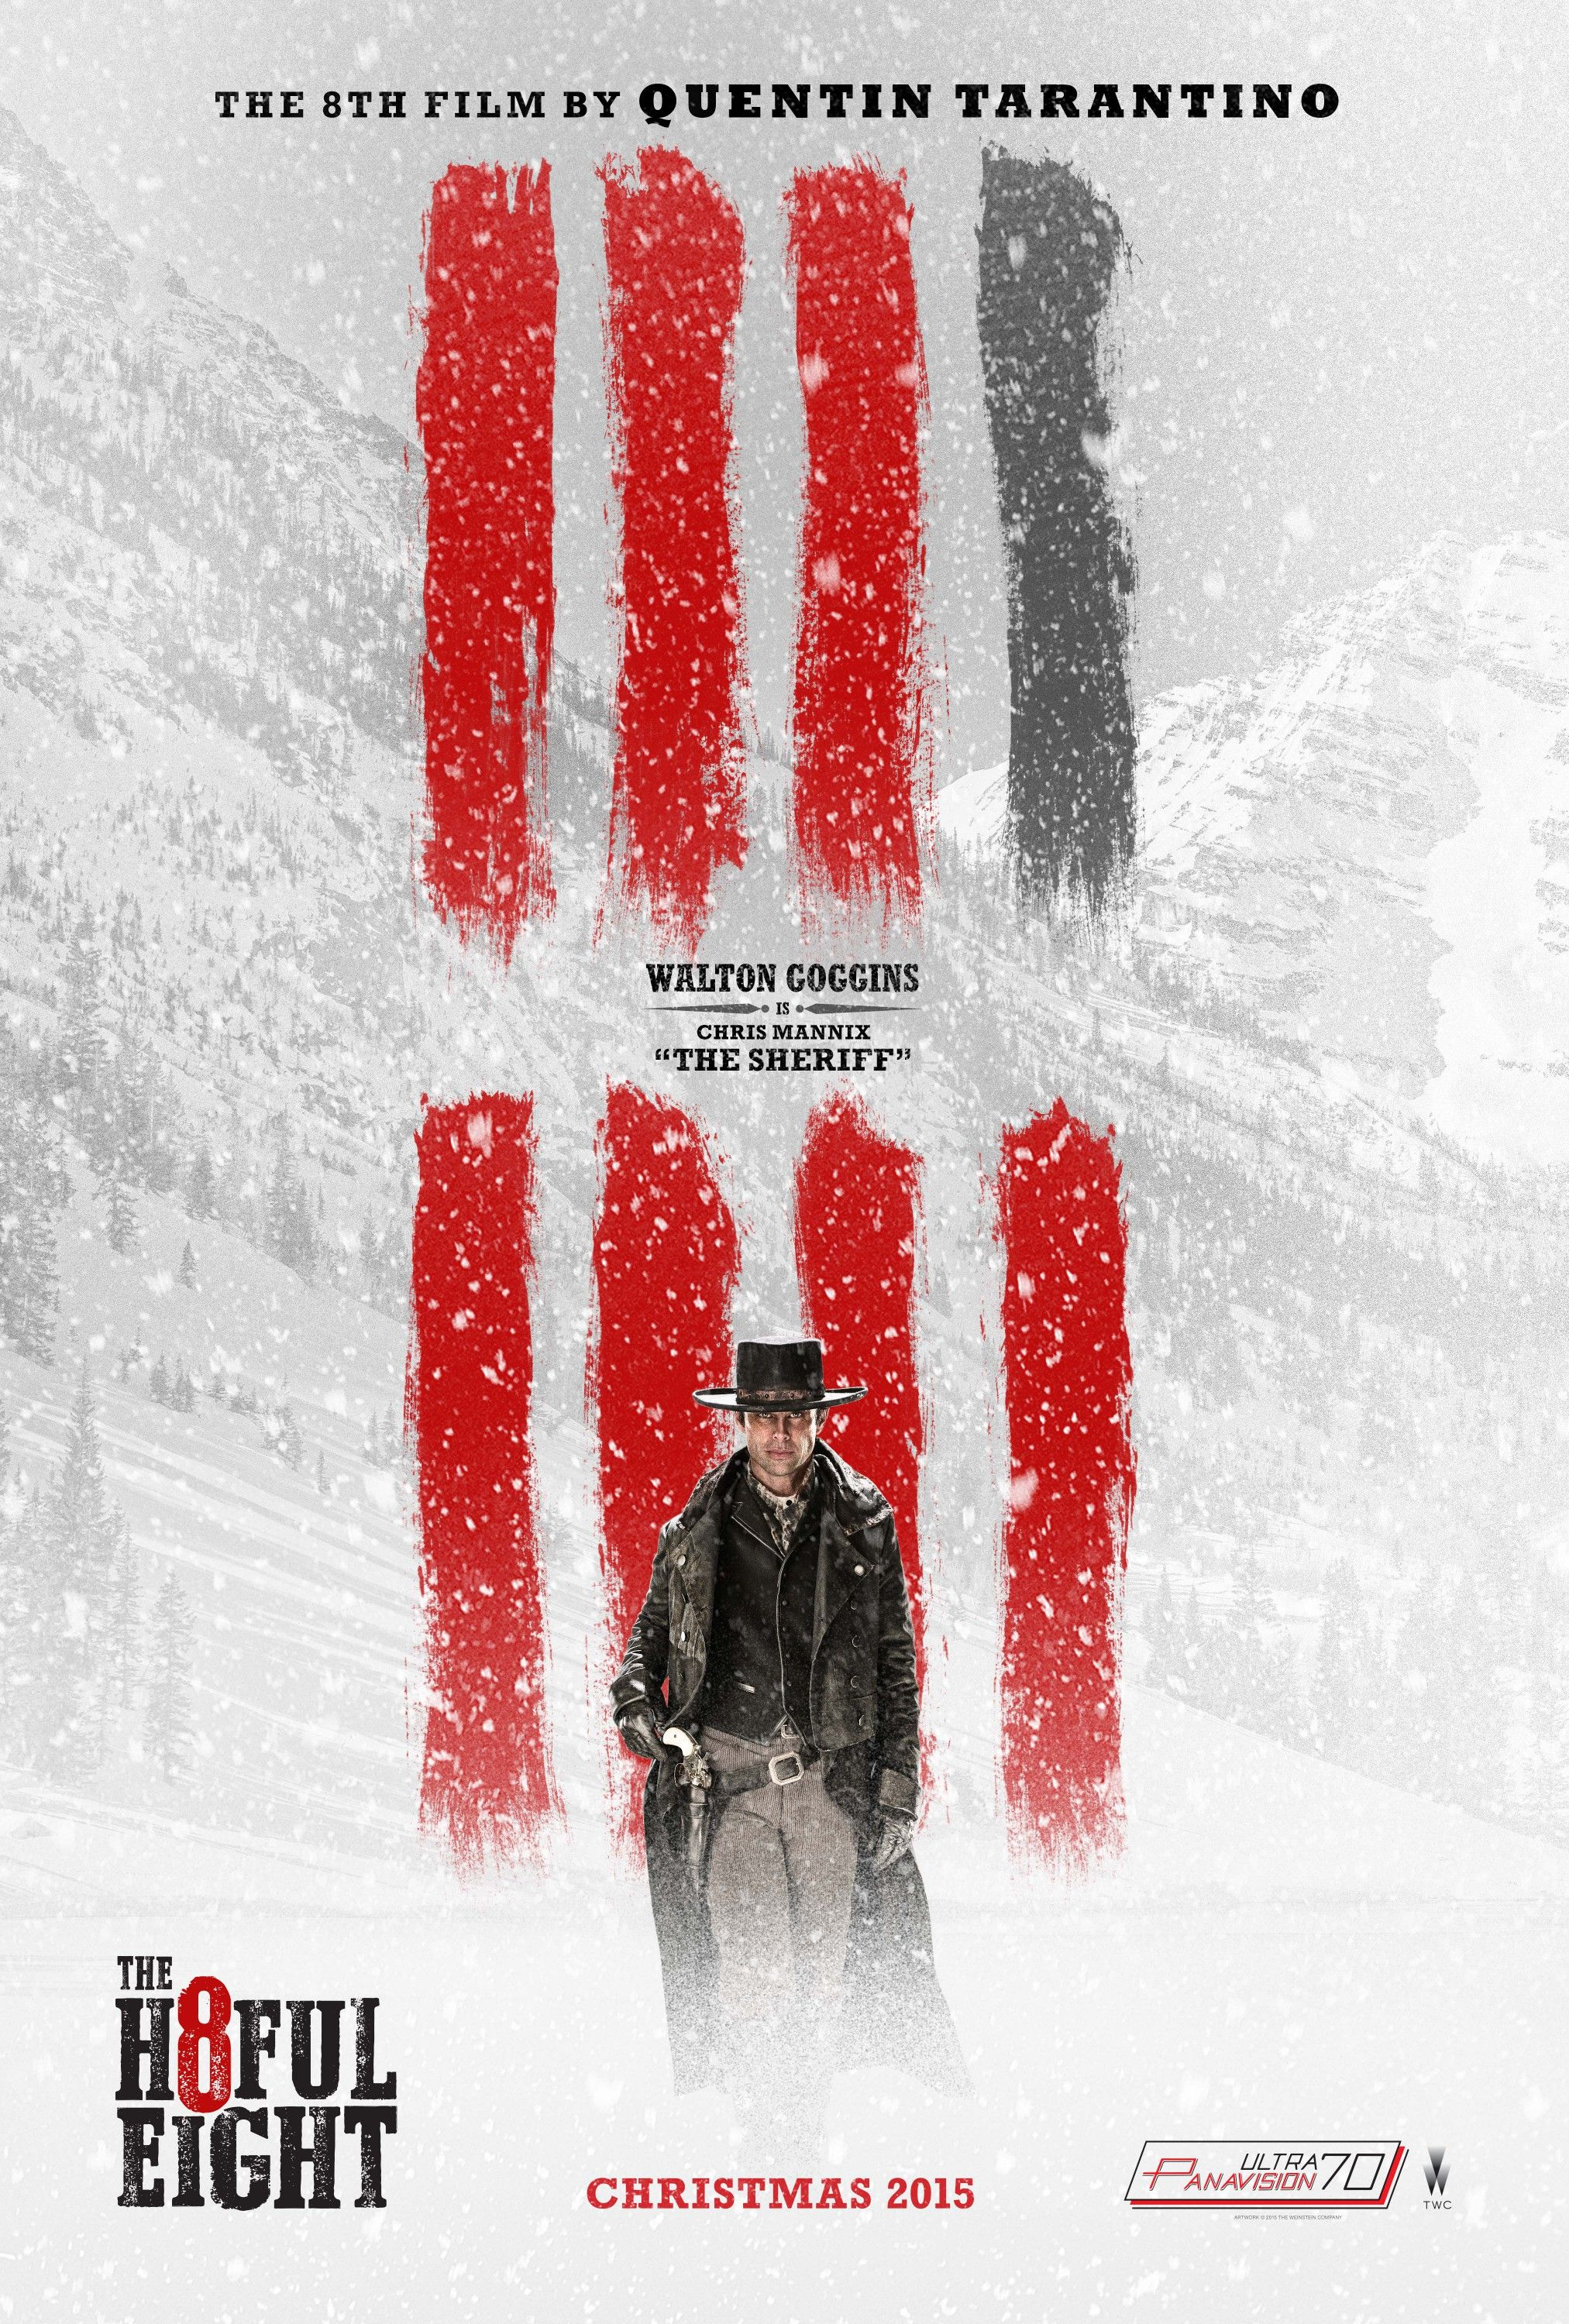 The hateful eight release date in Perth